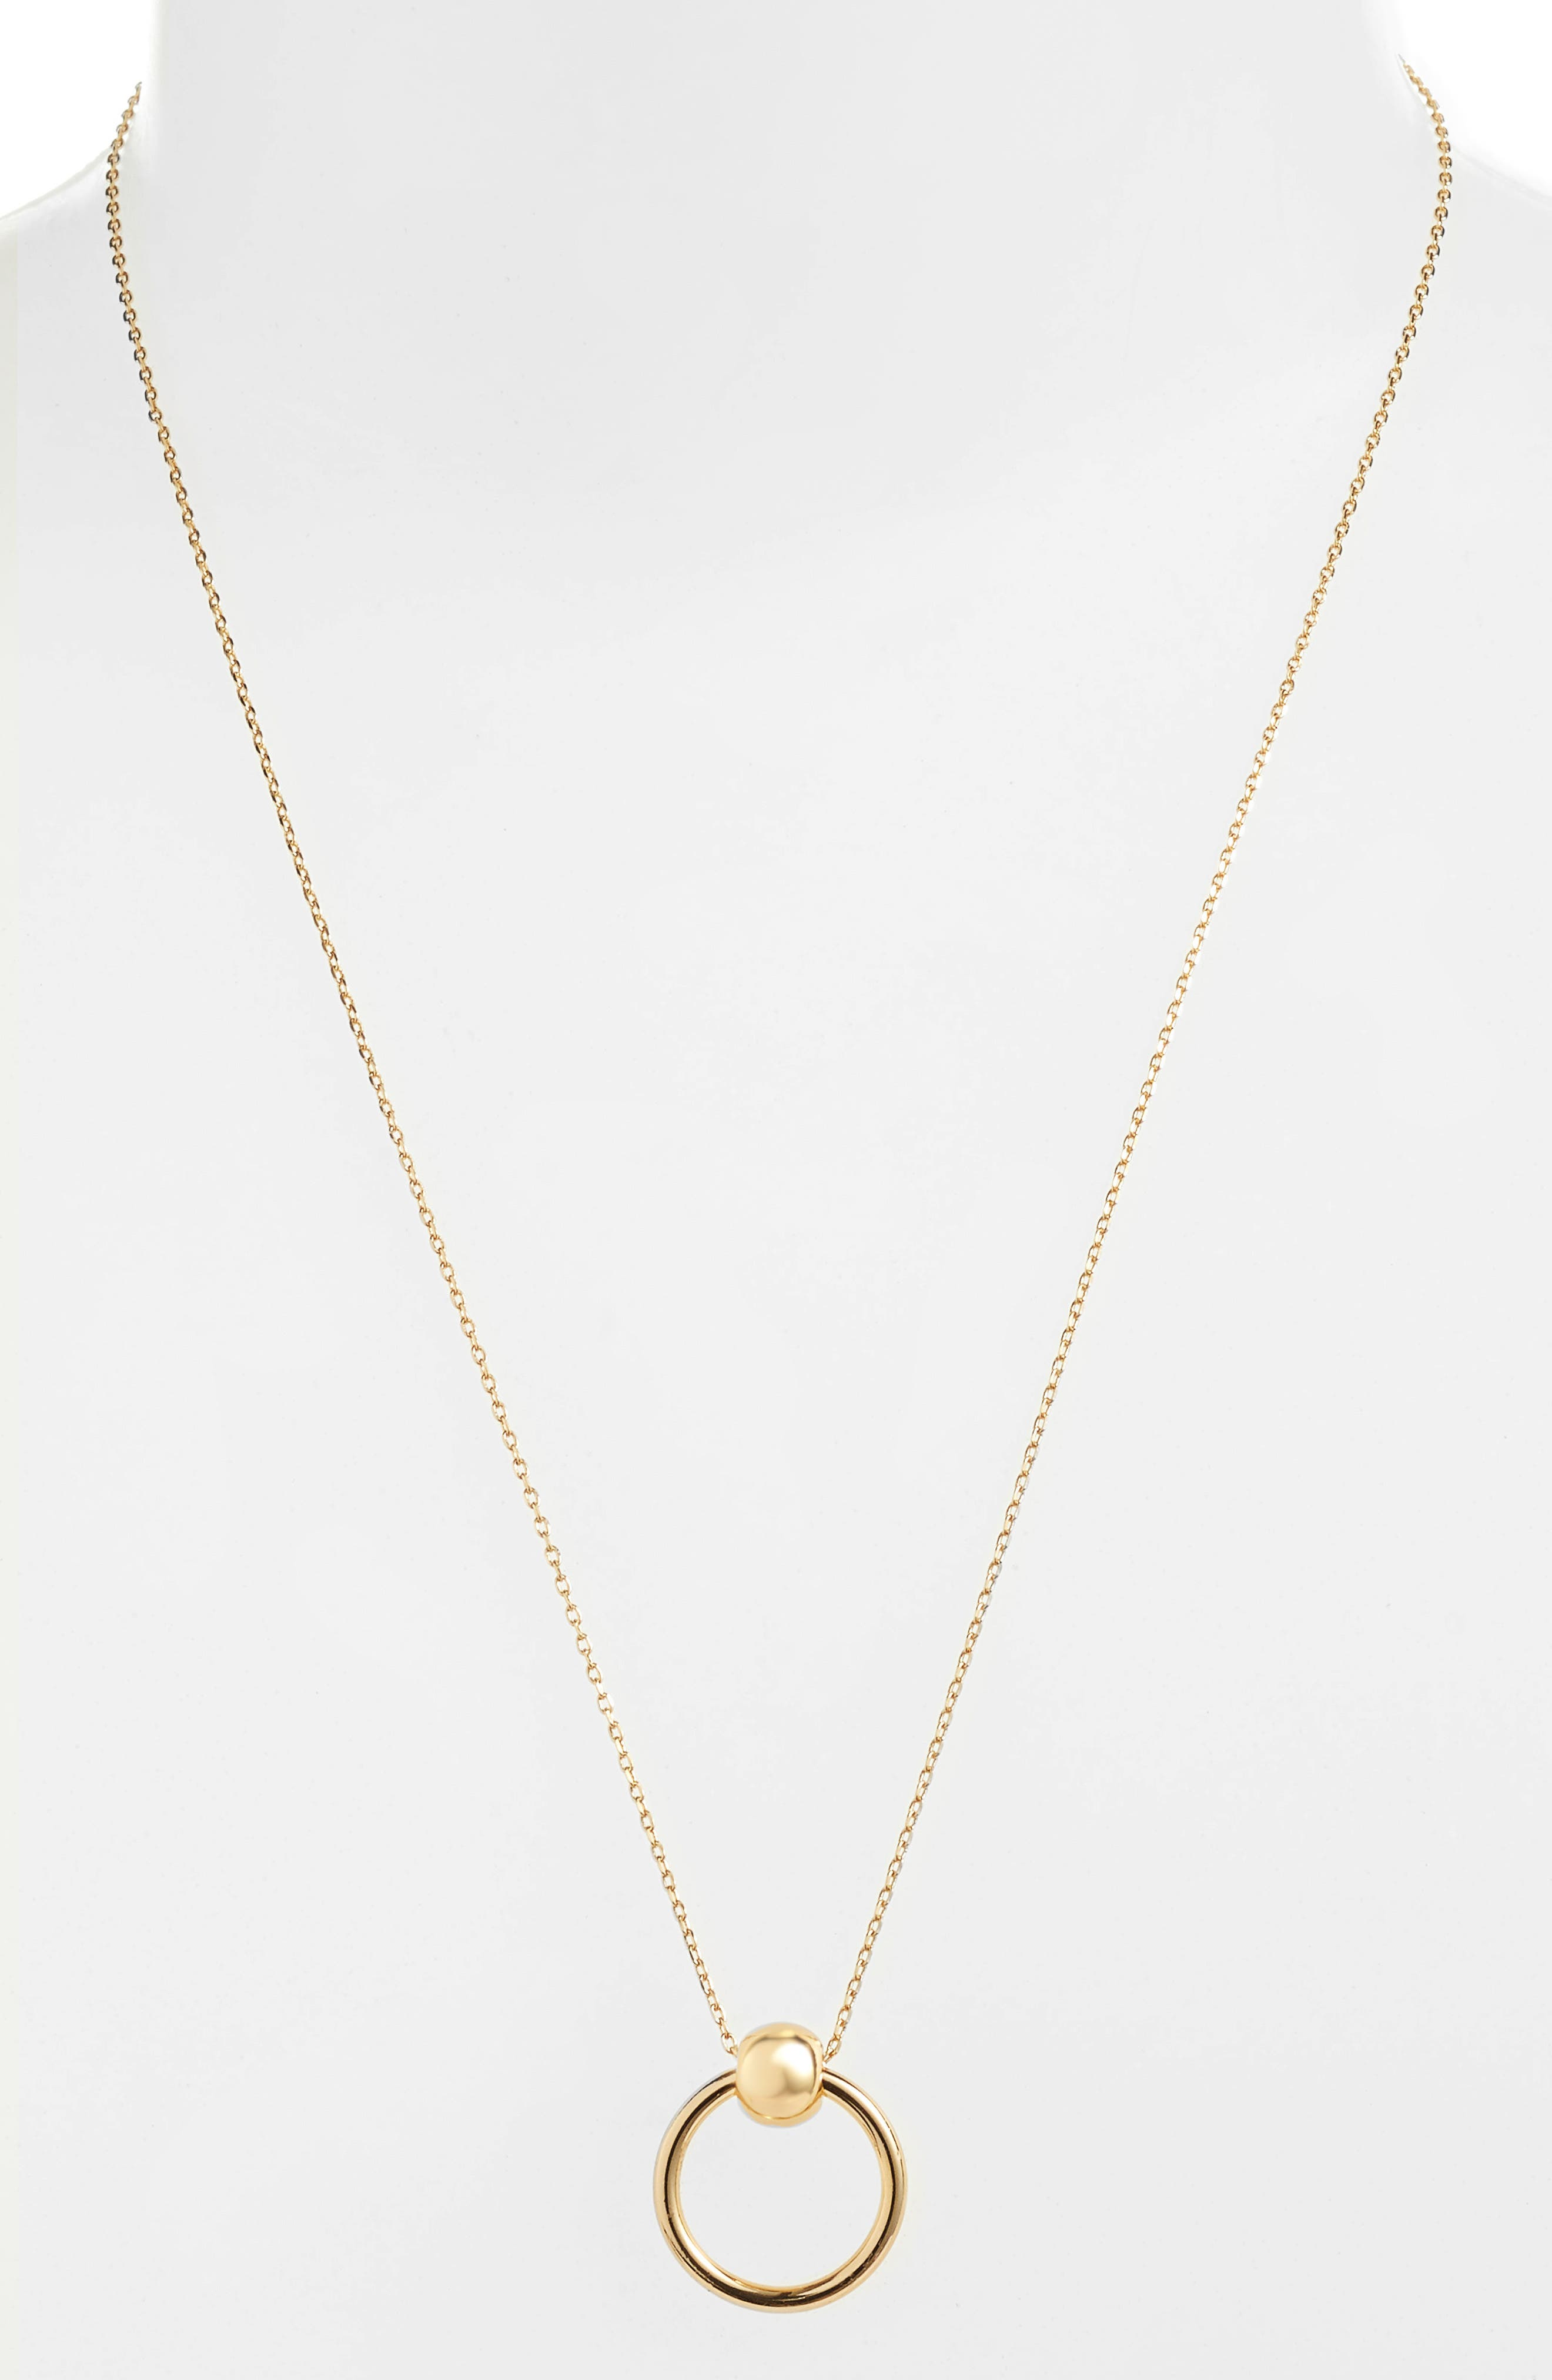 UNCOMMON JAMES BY KRISTIN CAVALLARI, Helix Necklace, Main thumbnail 1, color, GOLD